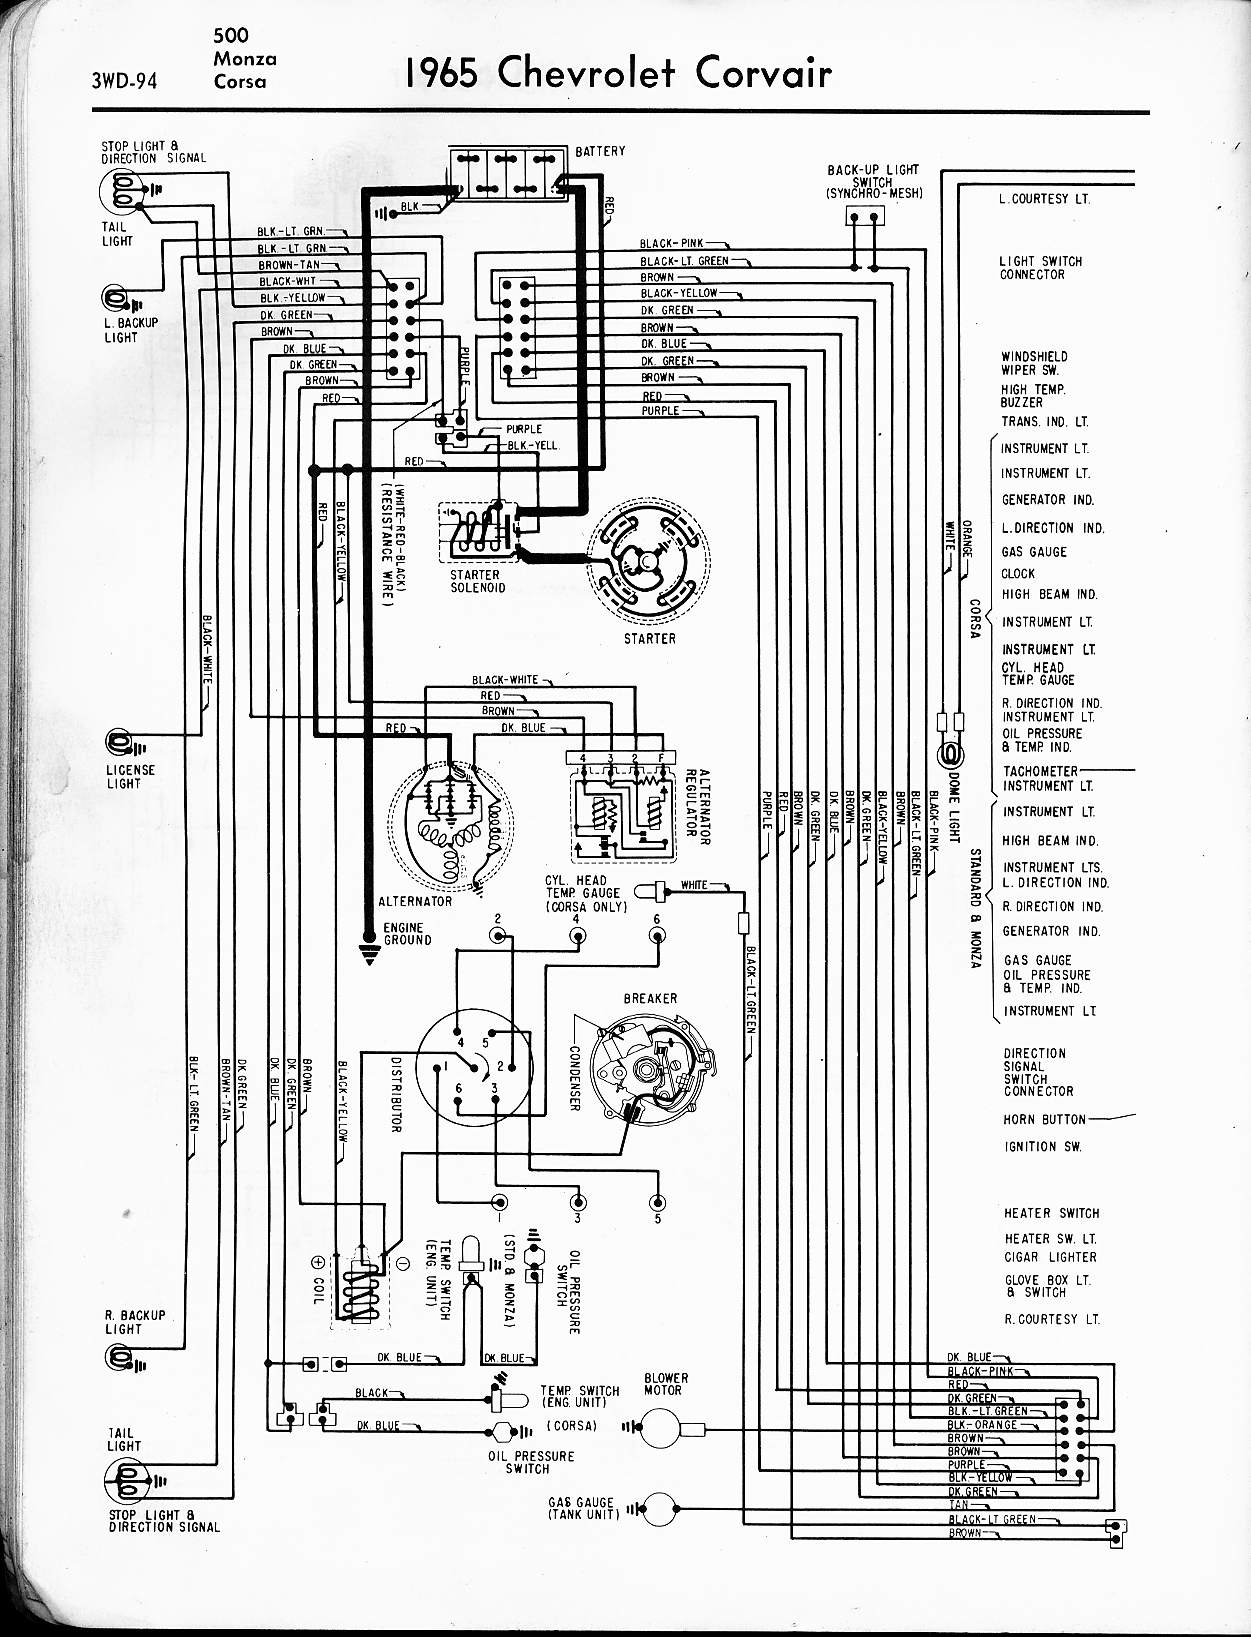 1965 chevy nova headlight wiring - 1996 honda civic ex fuse box diagram for wiring  diagram schematics  wiring diagram schematics